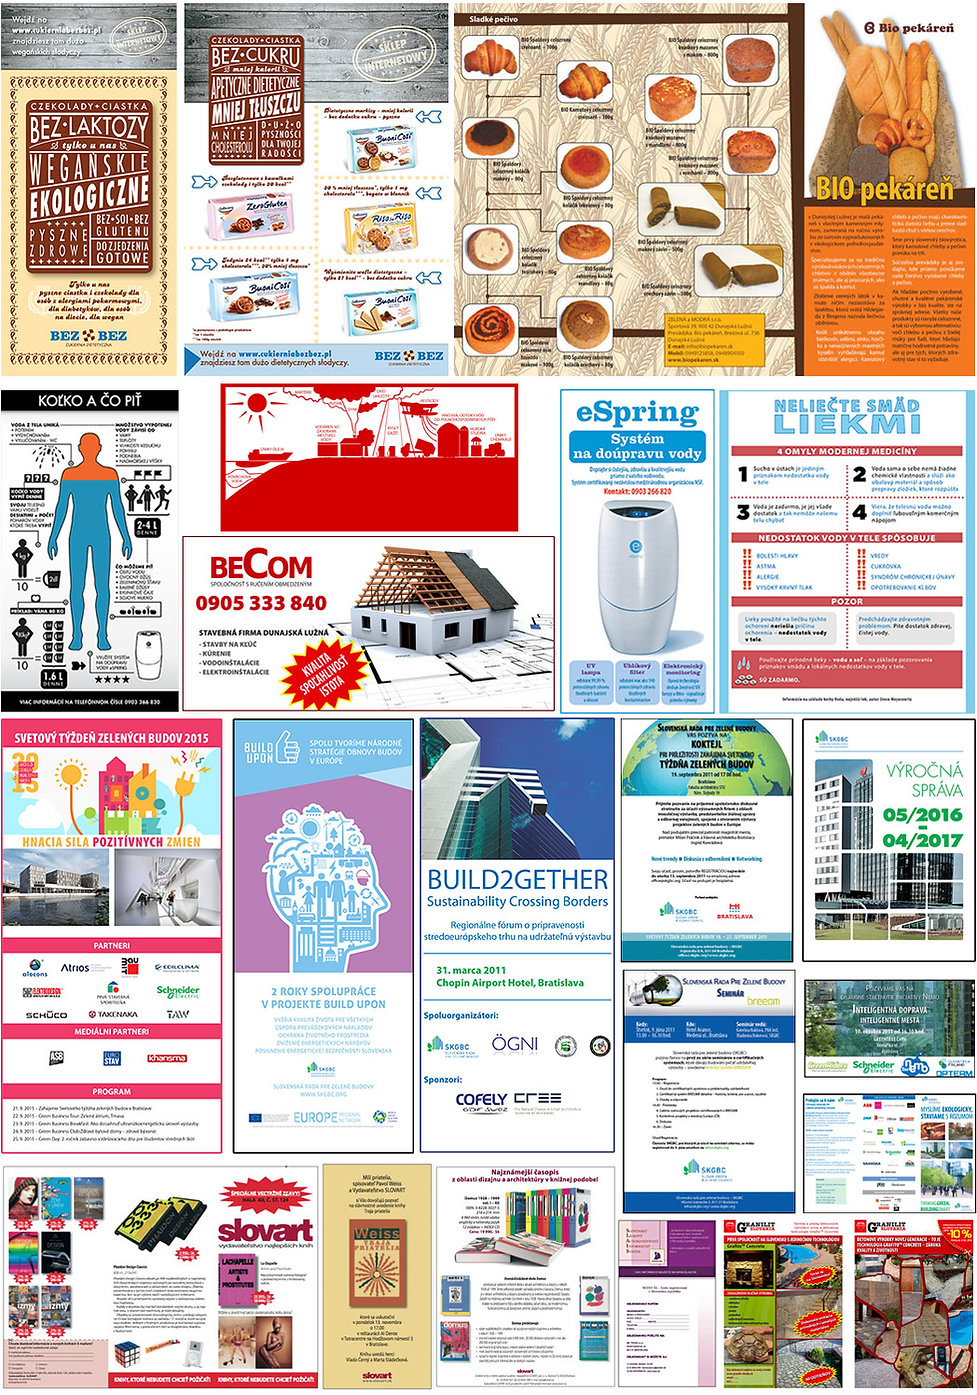 Advertisement and marketing materials, posters, booklets